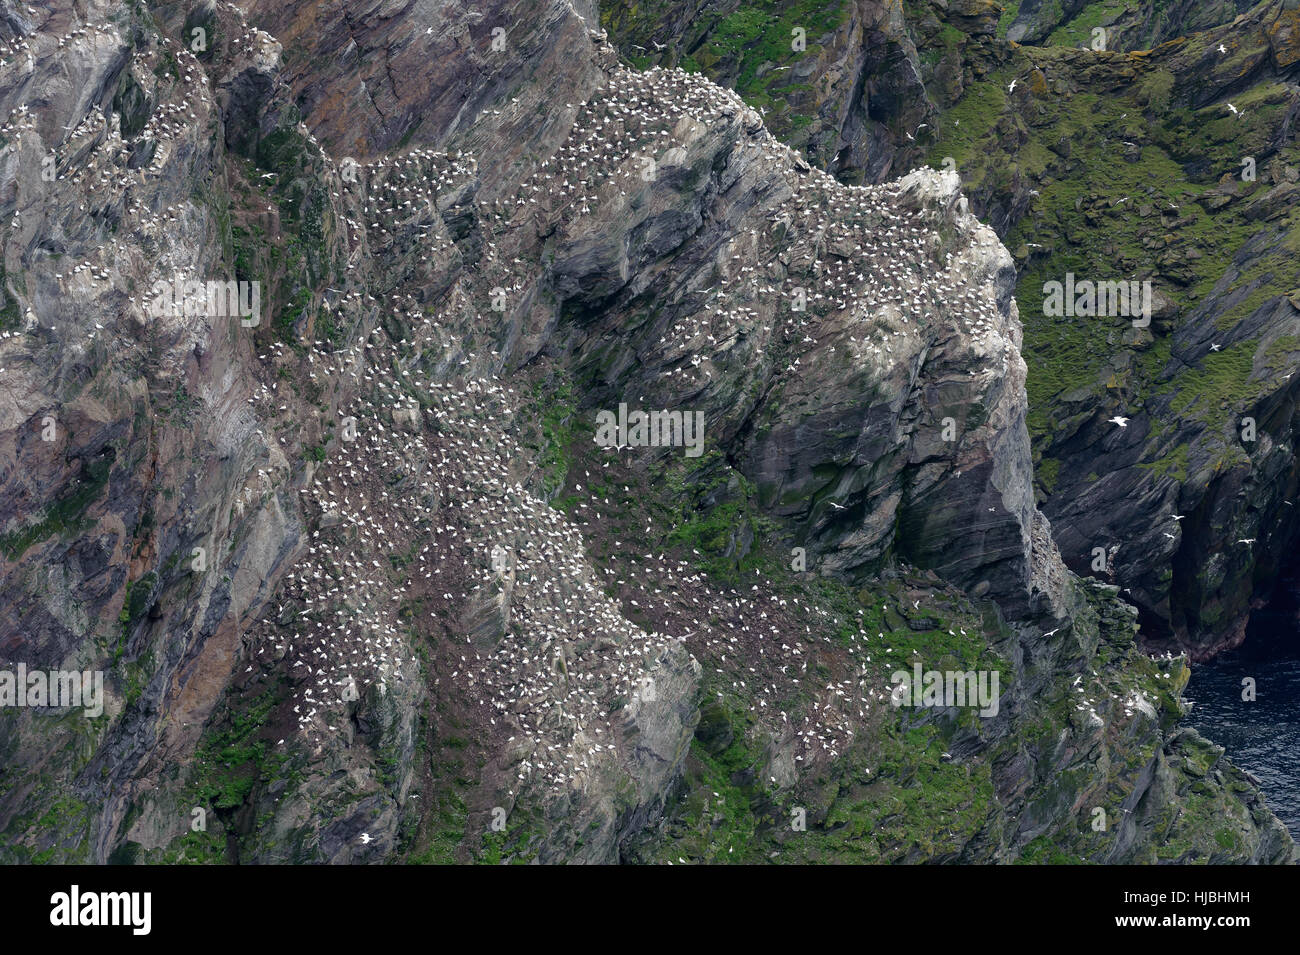 Nesting colony of northern gannets (Morus bassanus) on sea cliffs at Saito, Hermaness National Nature Reserve, Shetland. - Stock Image